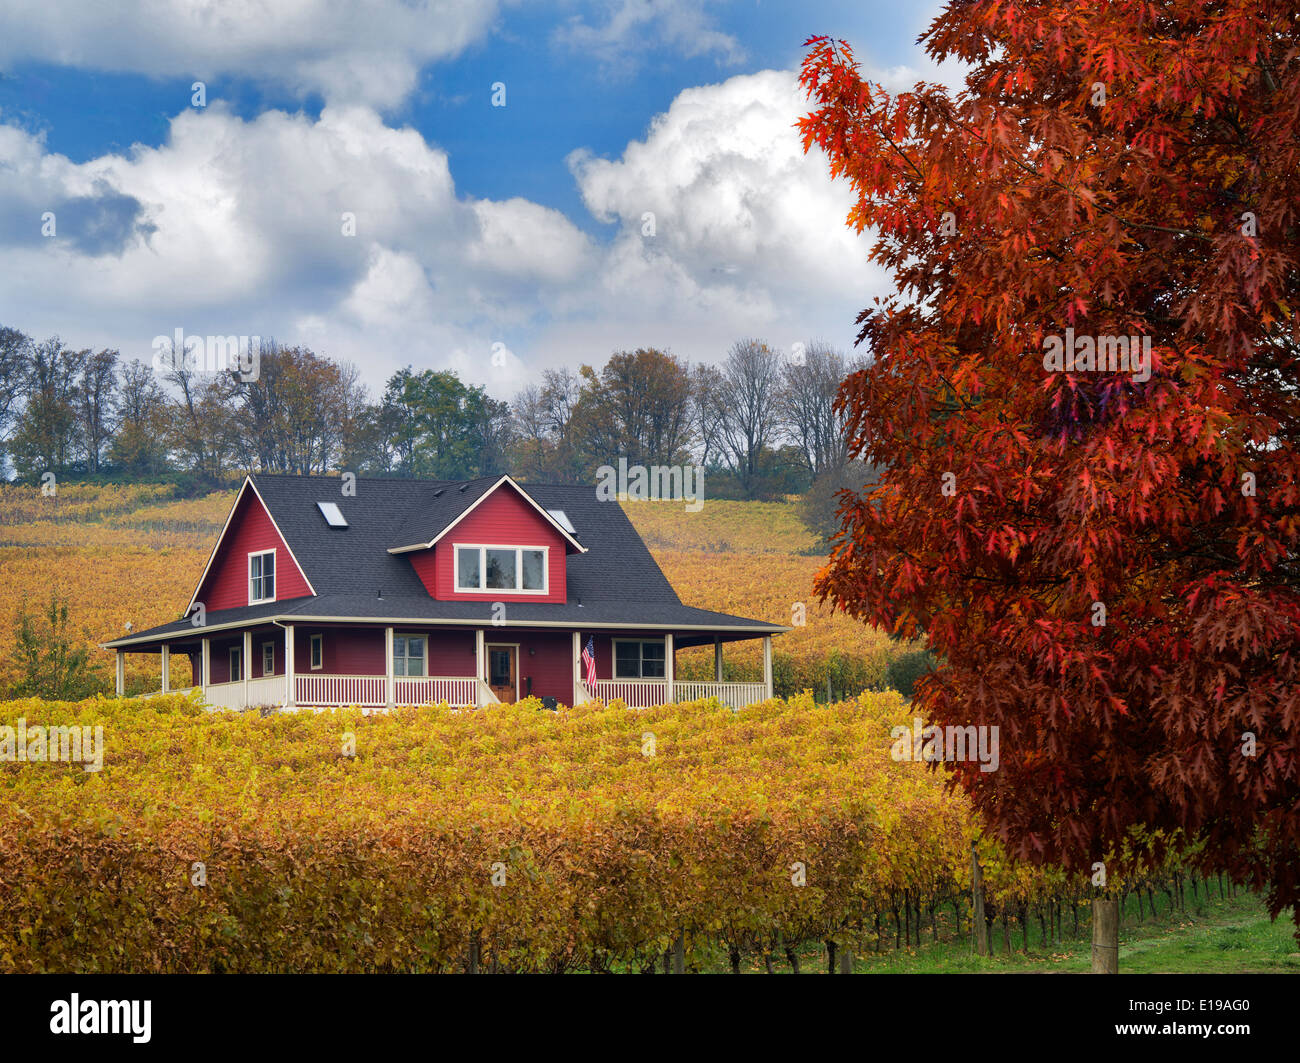 Sokol Blosser Vineyards in fall color and house. Oregon - Stock Image